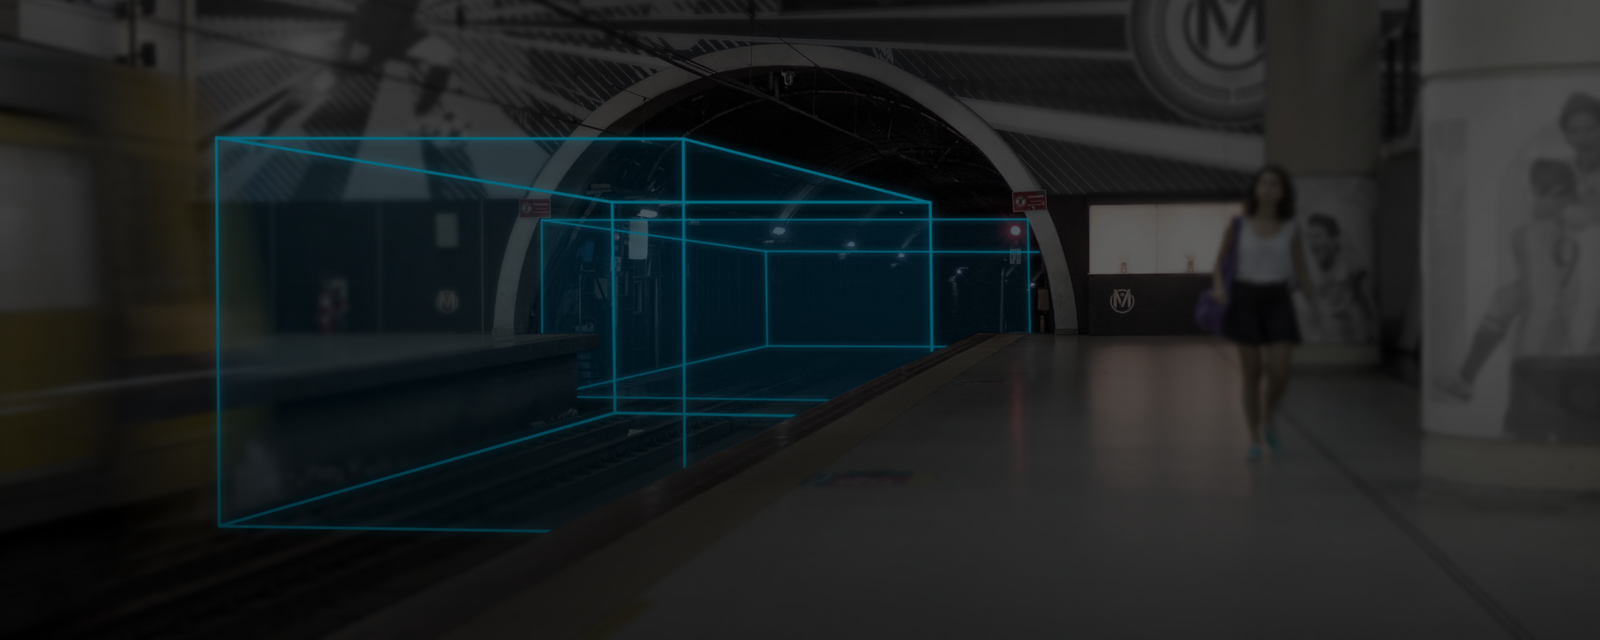 3D geofence in a train tunnel entrance